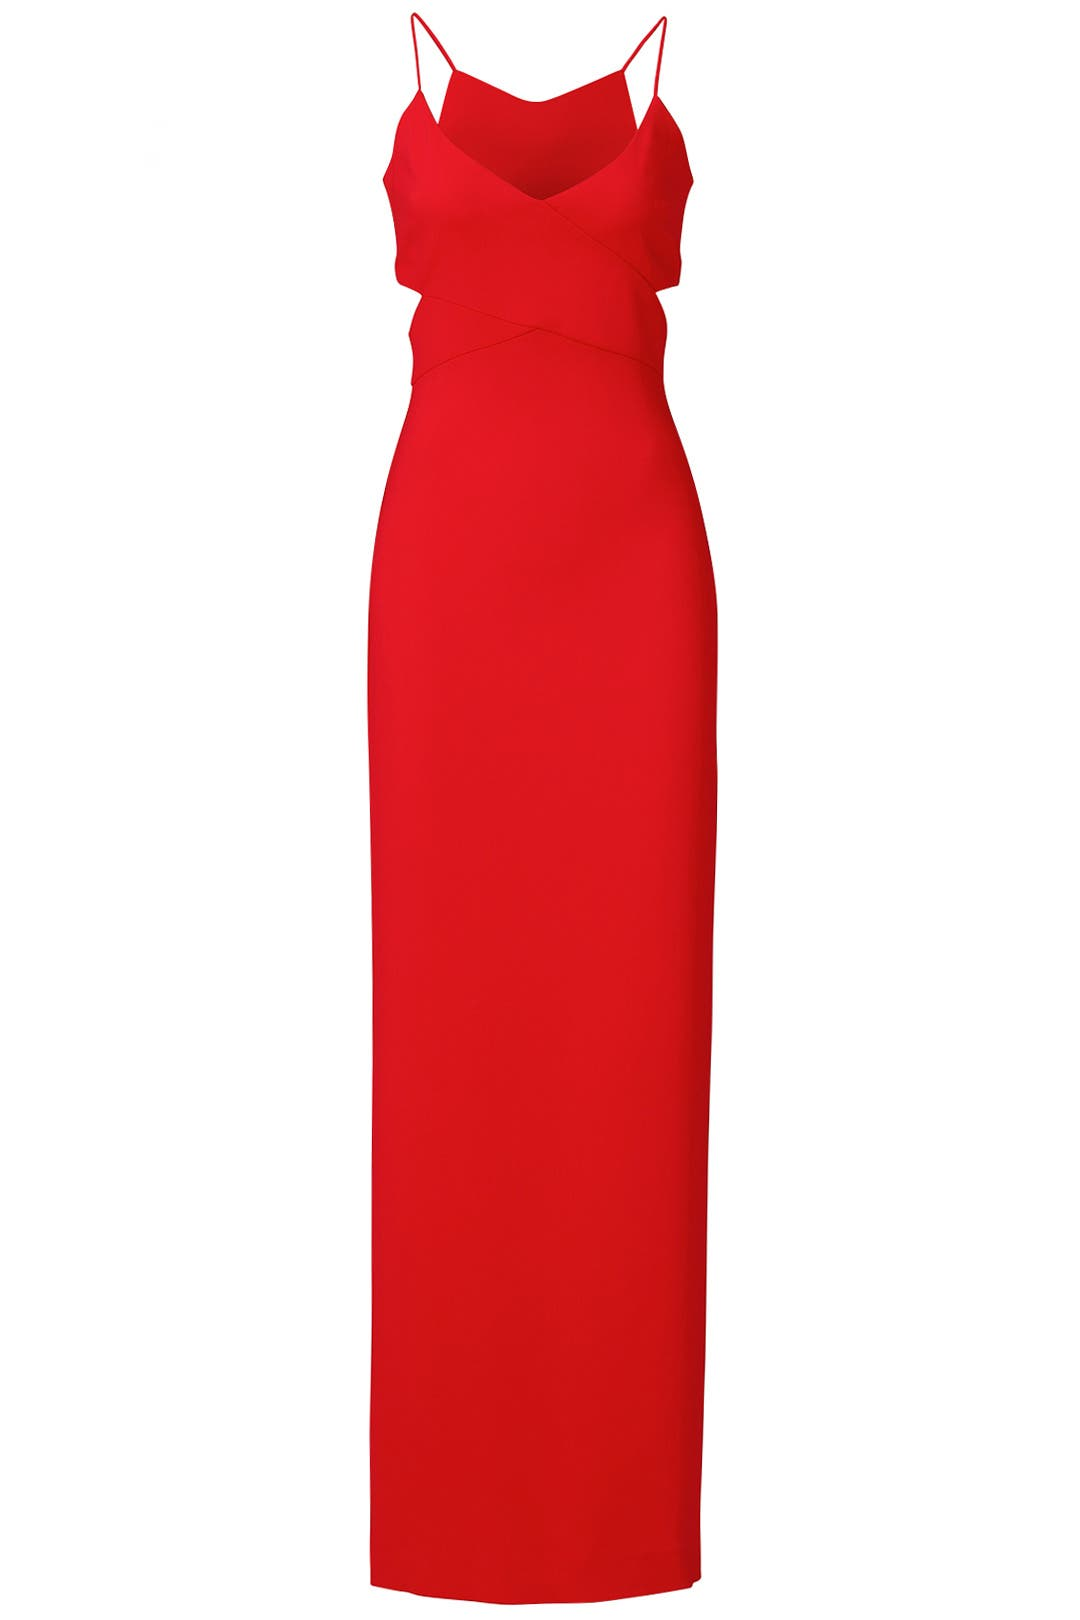 Badgley Mischka Woman Knotted Crepe Gown Red Size 0 Badgley Mischka qBxqt7BZr